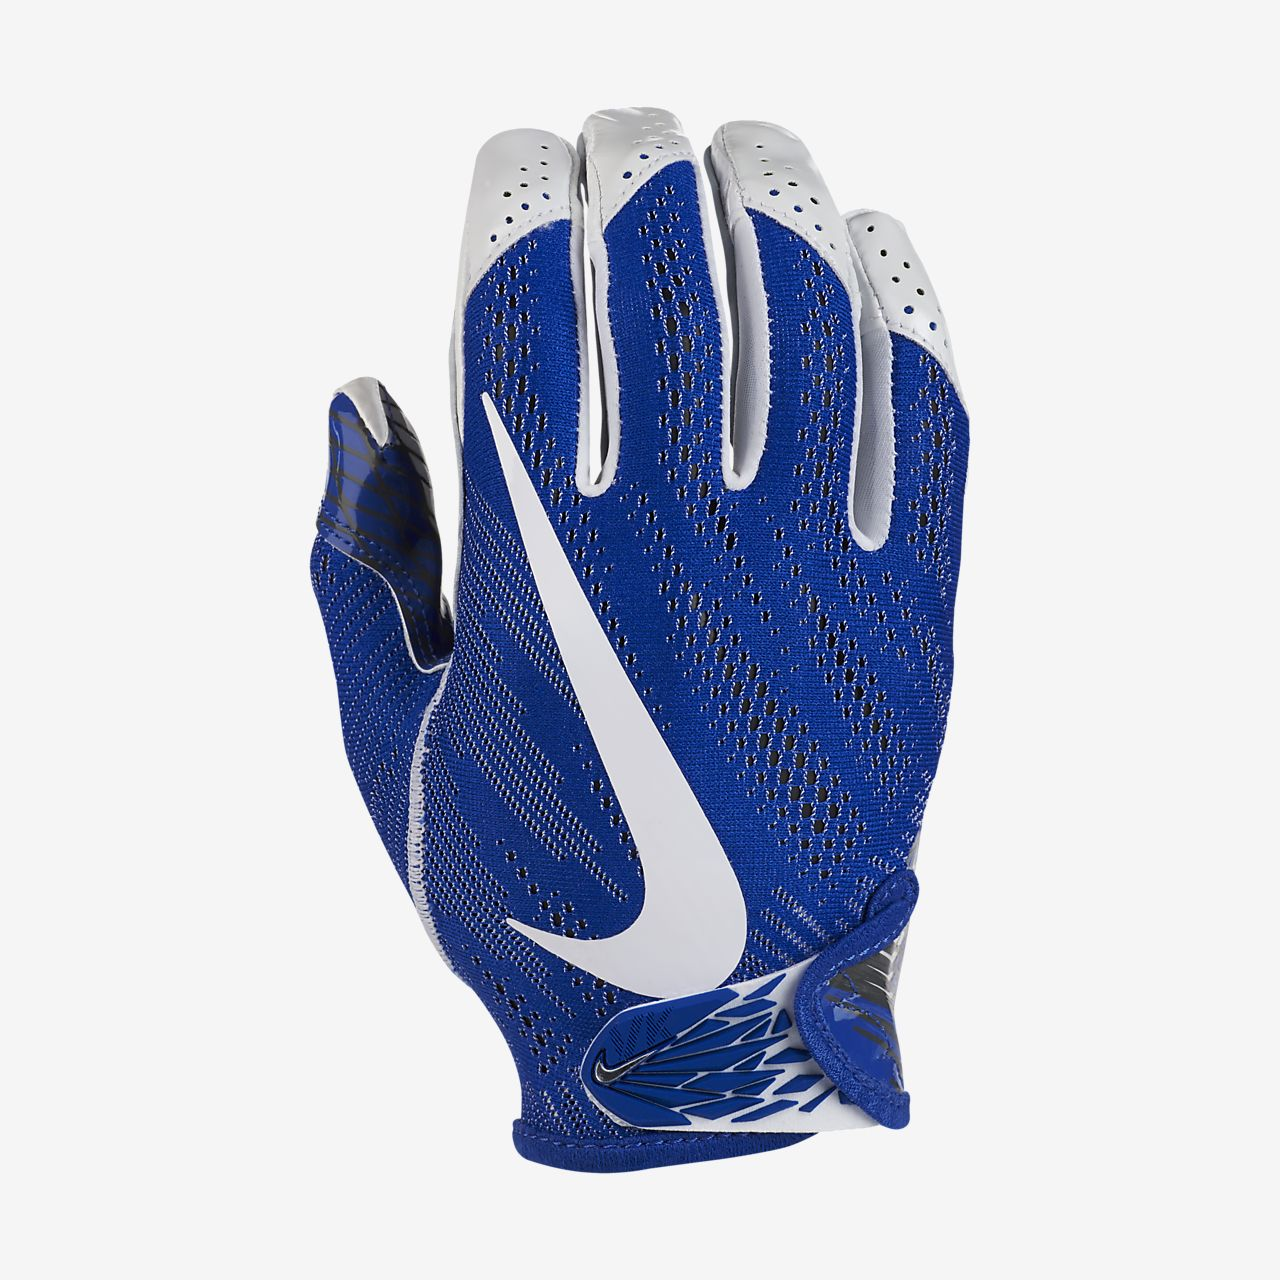 ... Nike Vapor Knit Men's Football Gloves